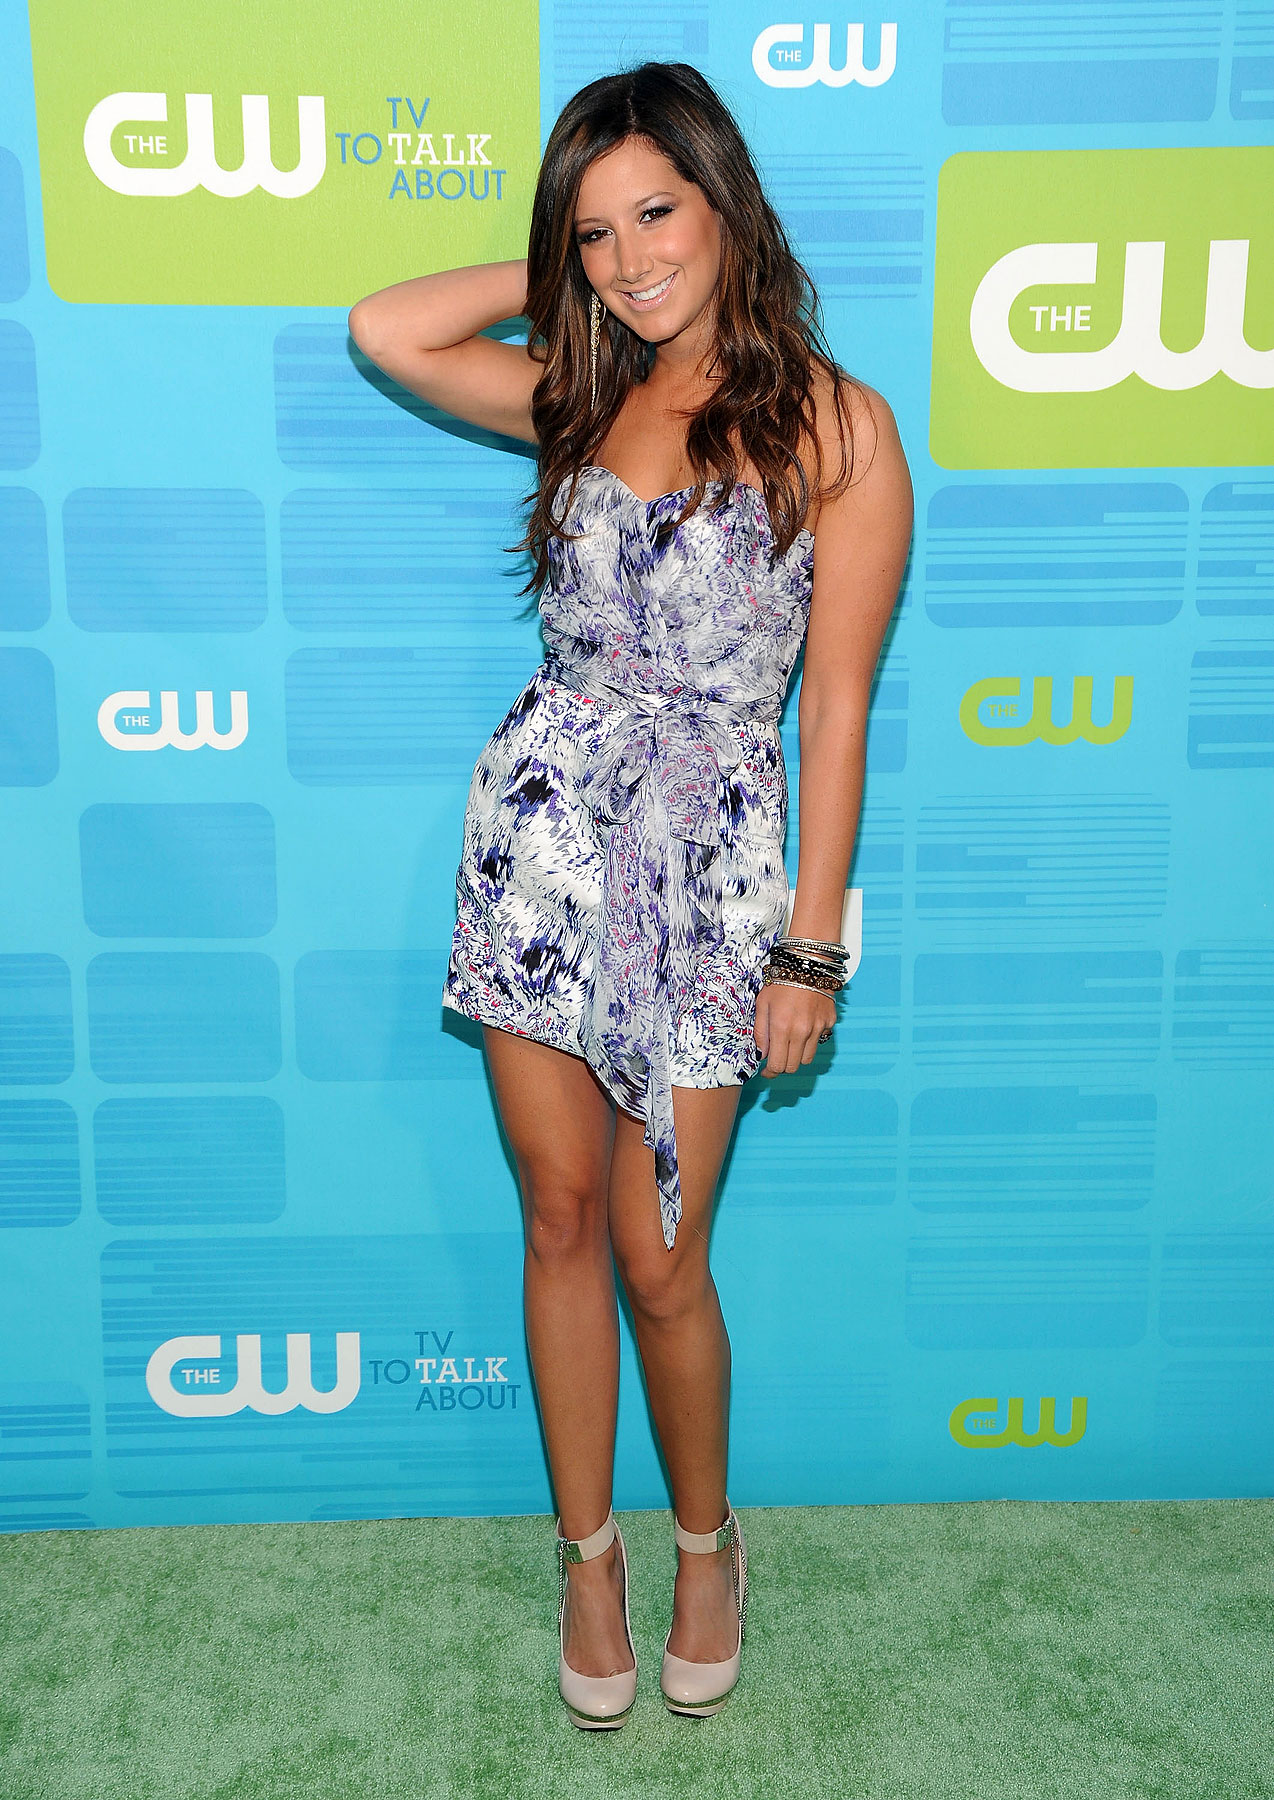 Fashion FAILs & FTWs Of The CW Network UpFronts (PHOTOS)